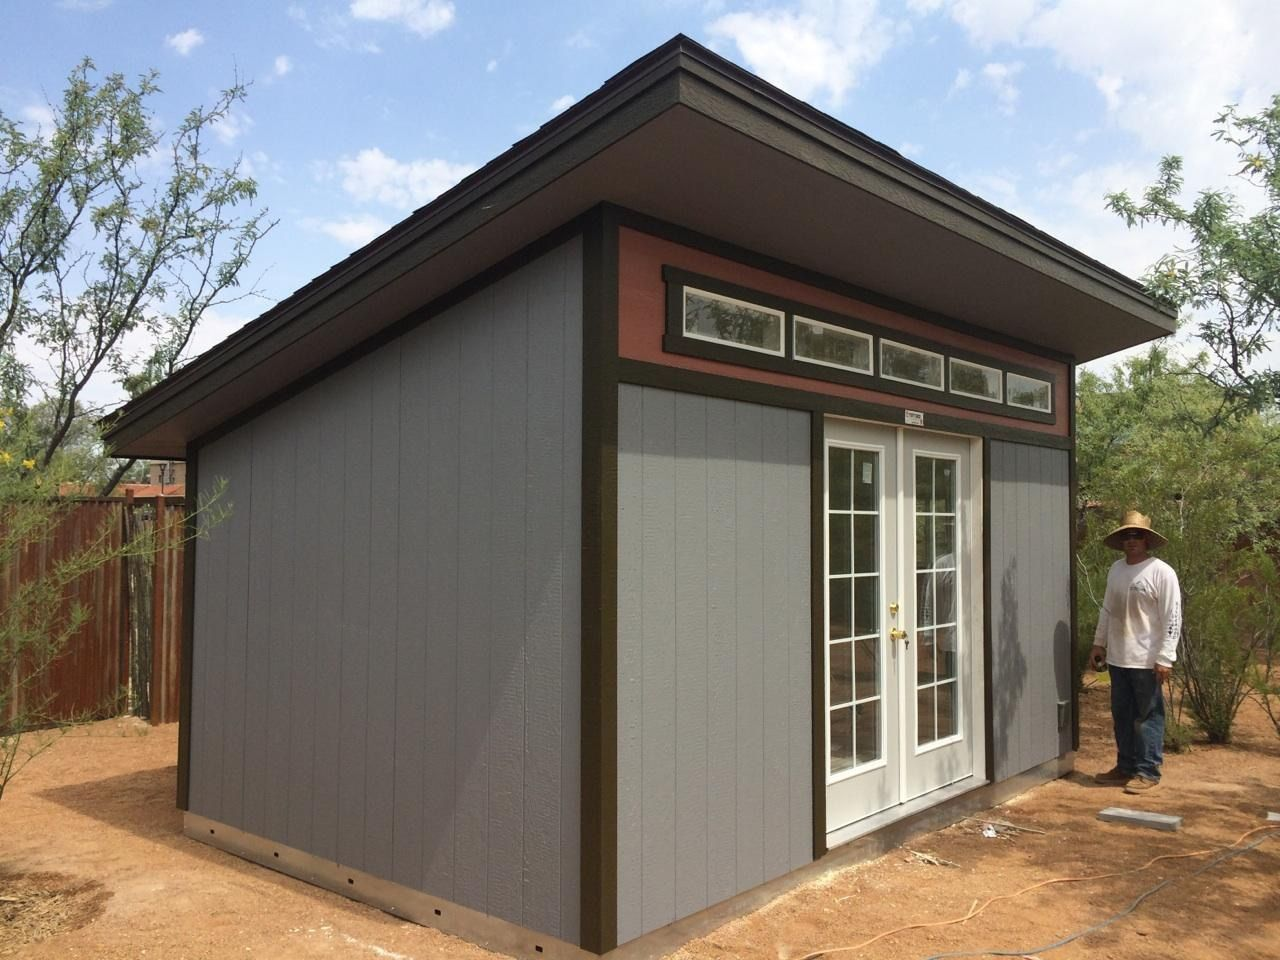 The premier pro studio a perfect home office with a for 12x14 garage door